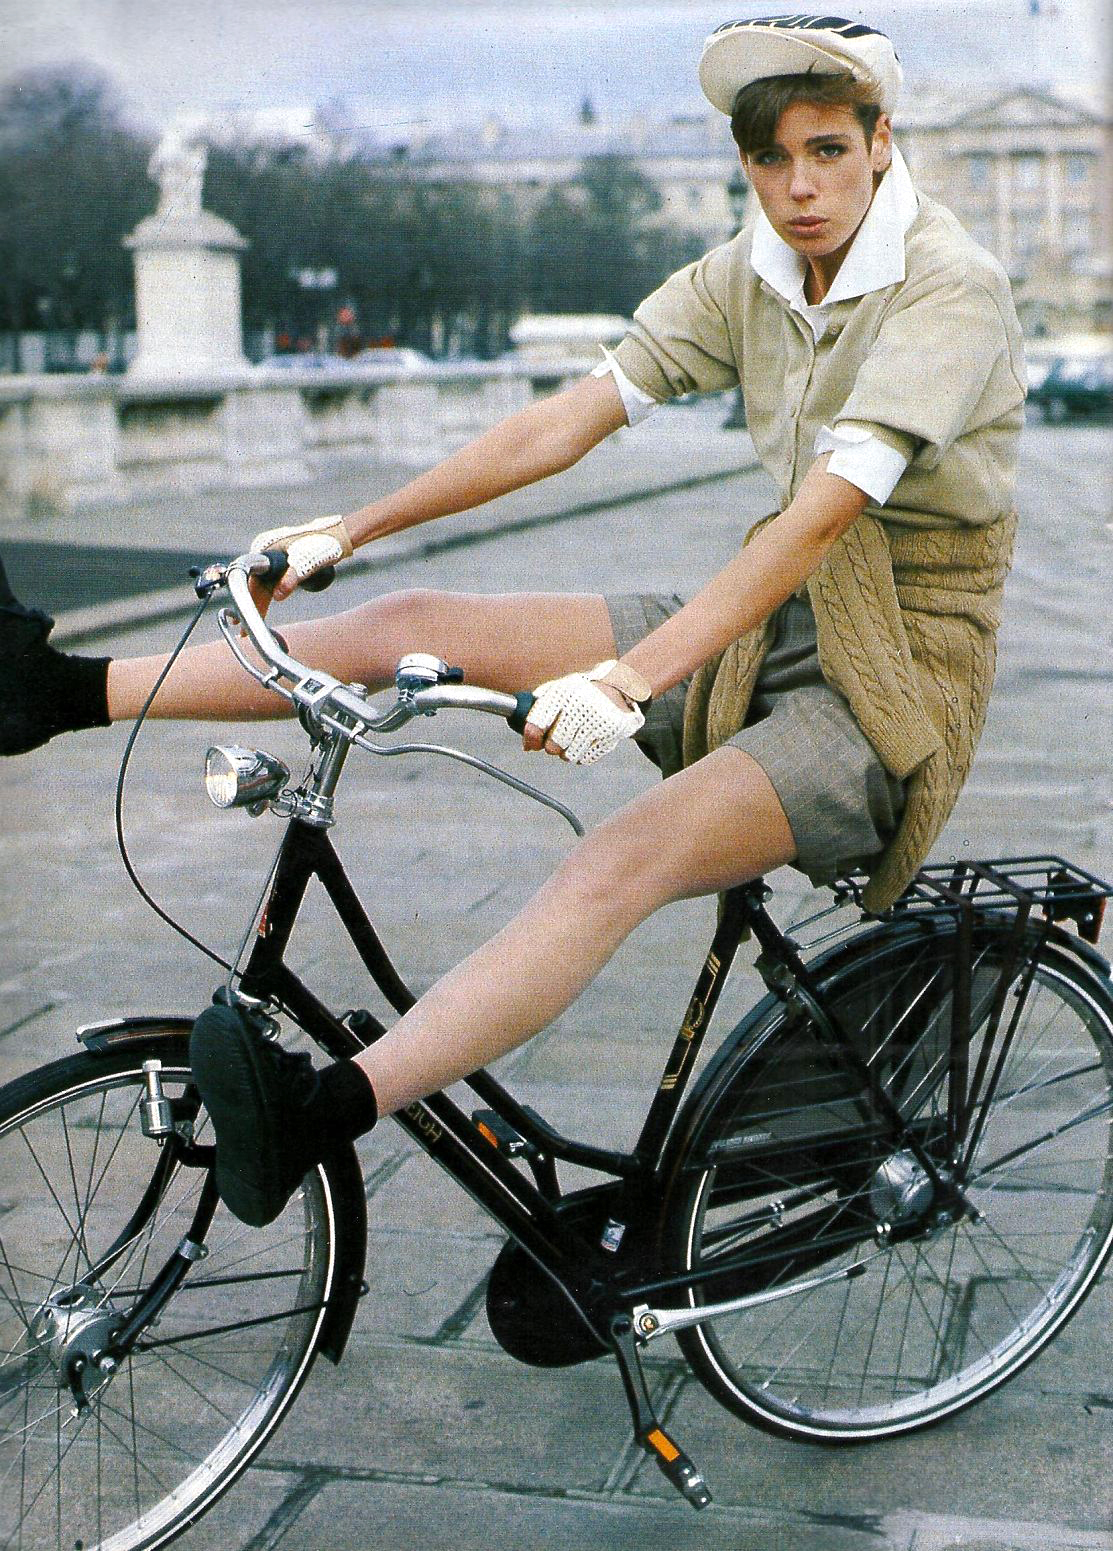 Jeny Howarth photographed by Pamela Hanson for Elle France February 1988 / bicycles in Vogue, Harper's Bazaar, Marie Claire, Elle fashion editorials and campaigns / via fashioned by love british fashion blog